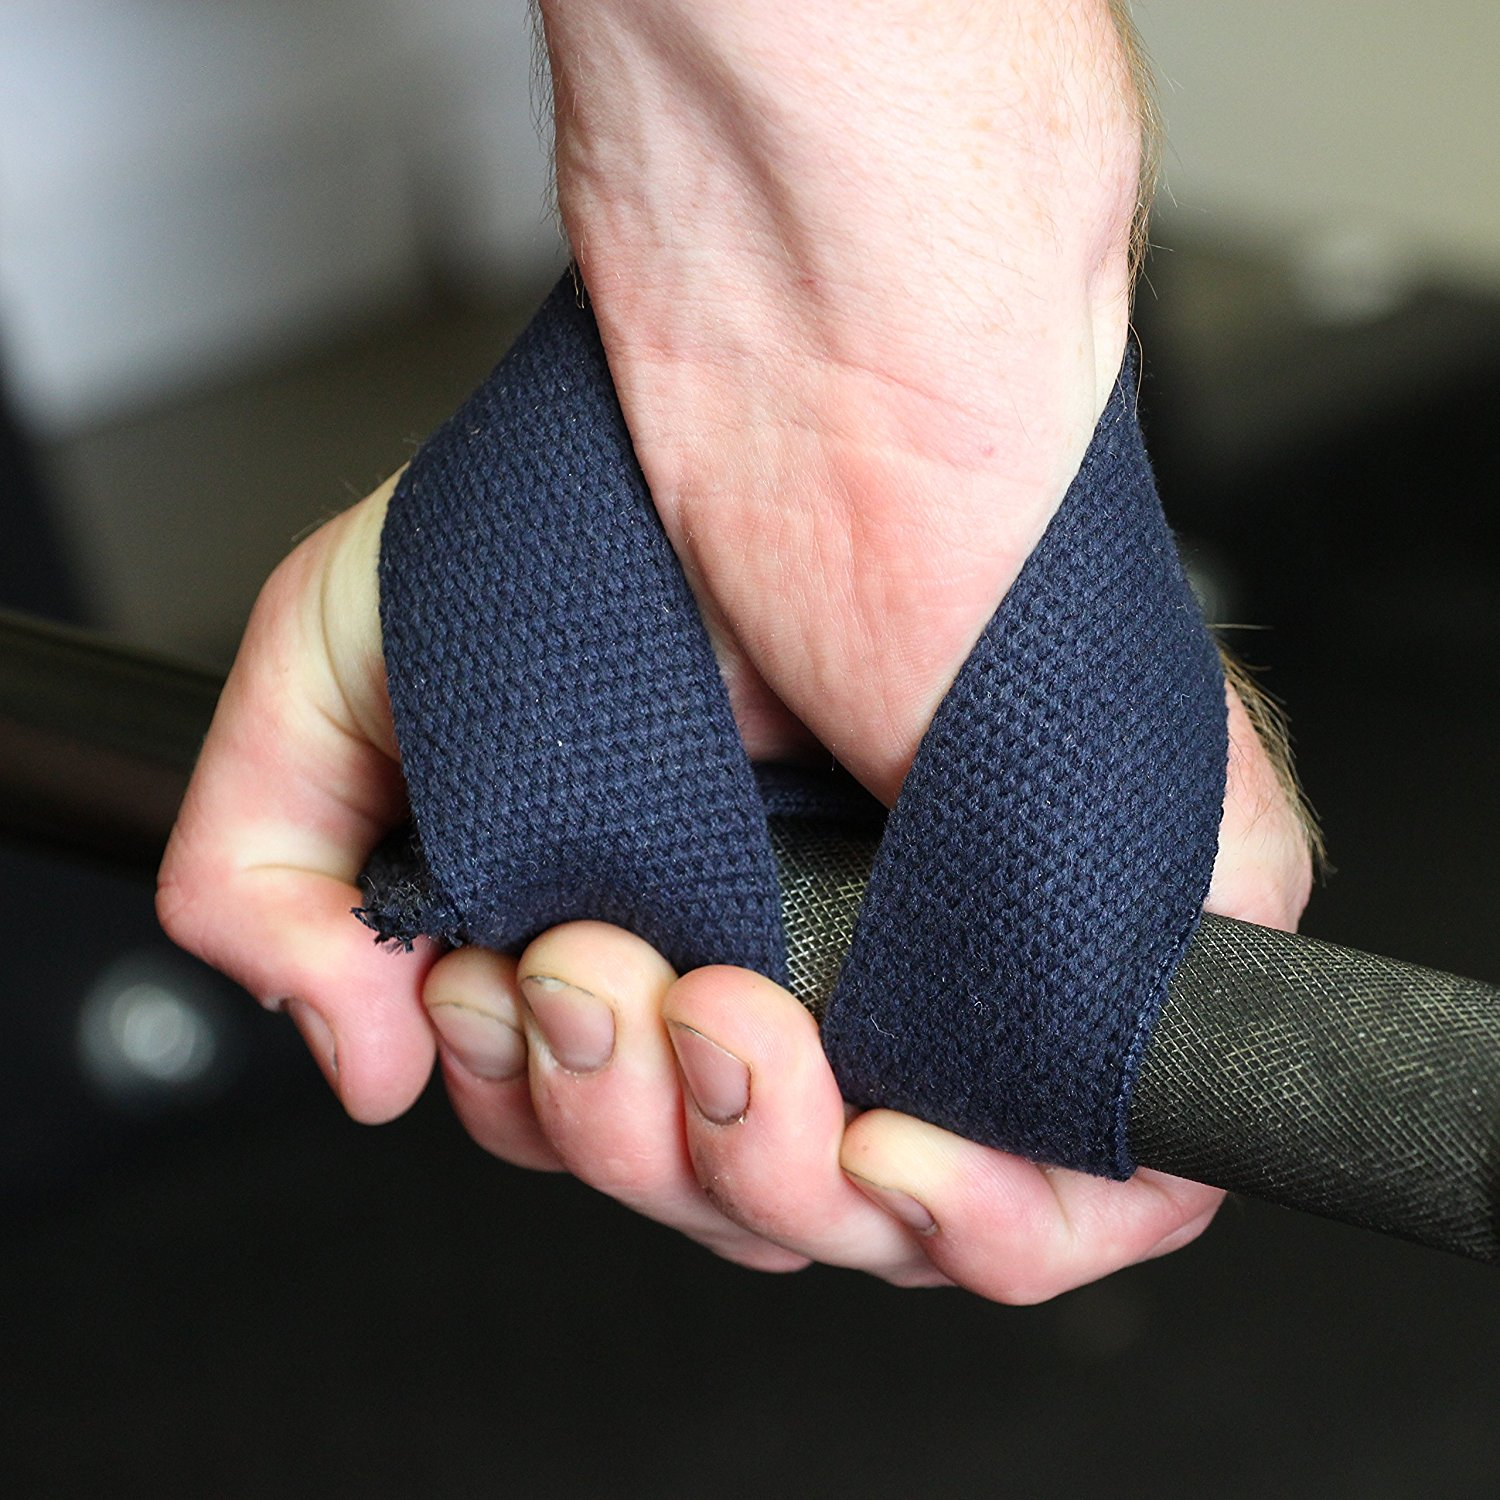 how to use olympic weightlifting straps